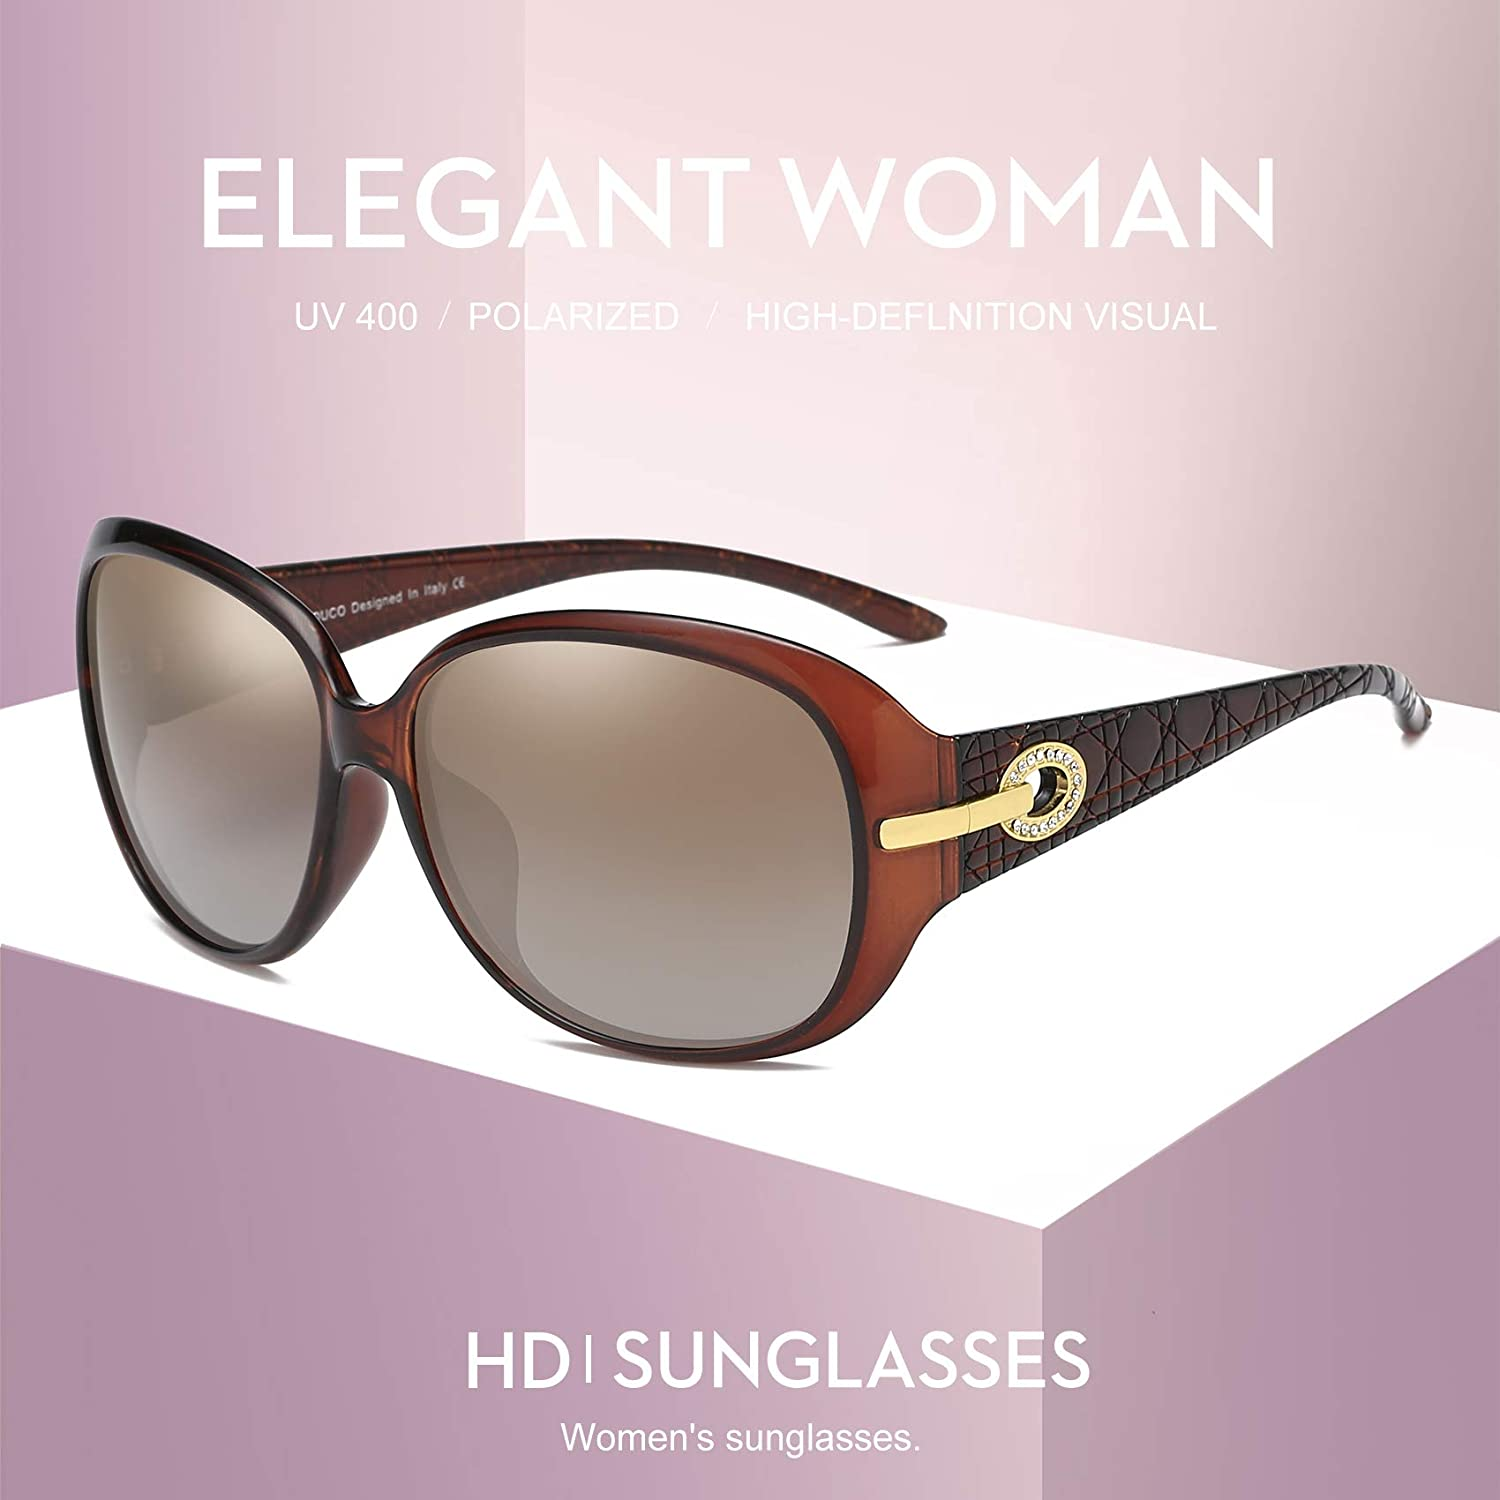 30d21131ed2 DUCO Women s Shades Classic Oversized Polarised Sunglasses 100% UV  Protection 6214 Brown Frame Brown Lens  Amazon.co.uk  Clothing